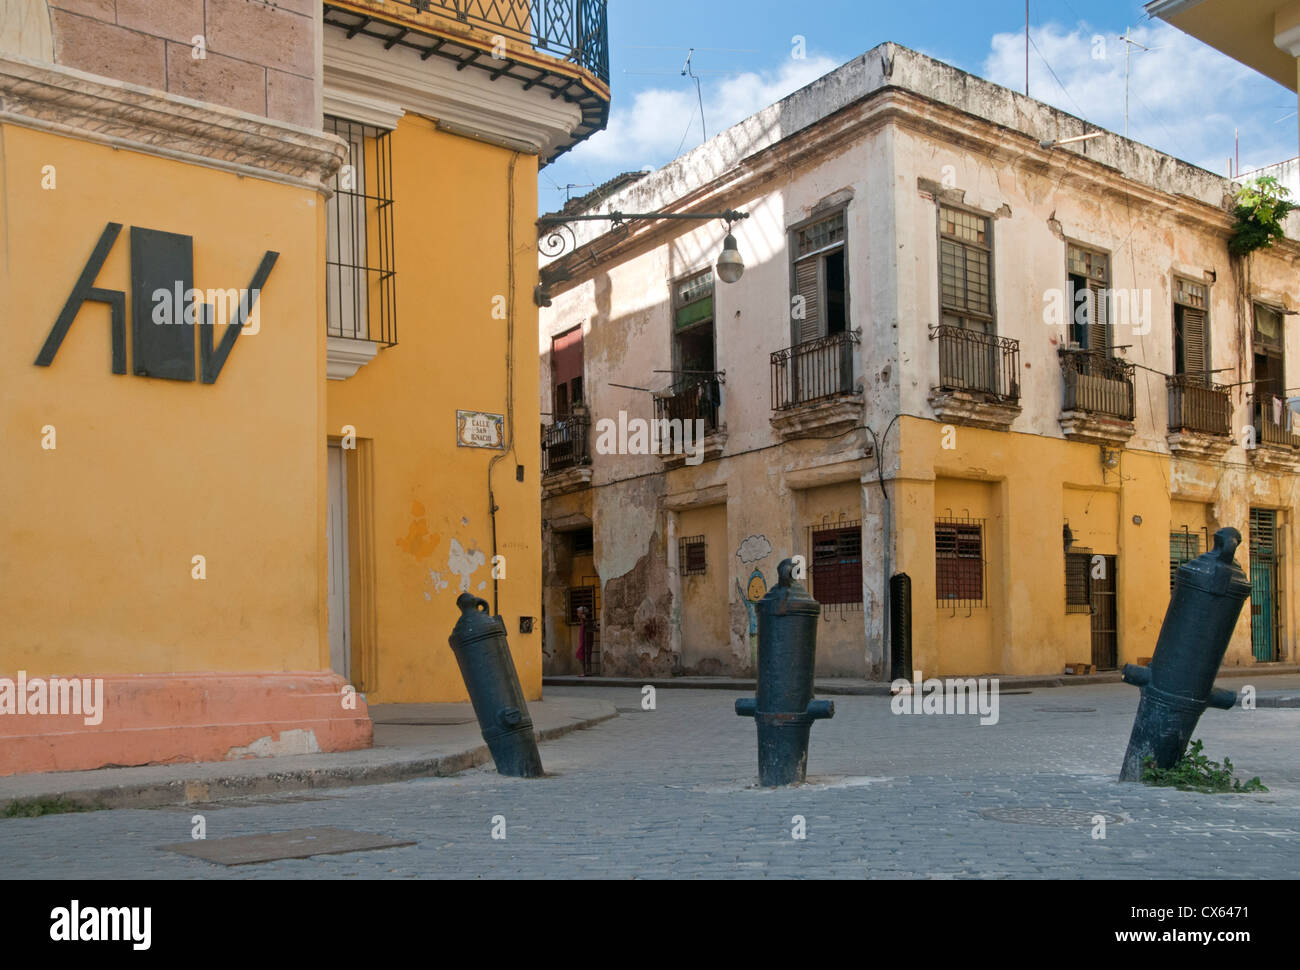 Upturned Canon Bollards at the corner of Plaza Vieja & Calle San Ignacio, Habana Vieja, Havana, Cuba, Caribbean - Stock Image